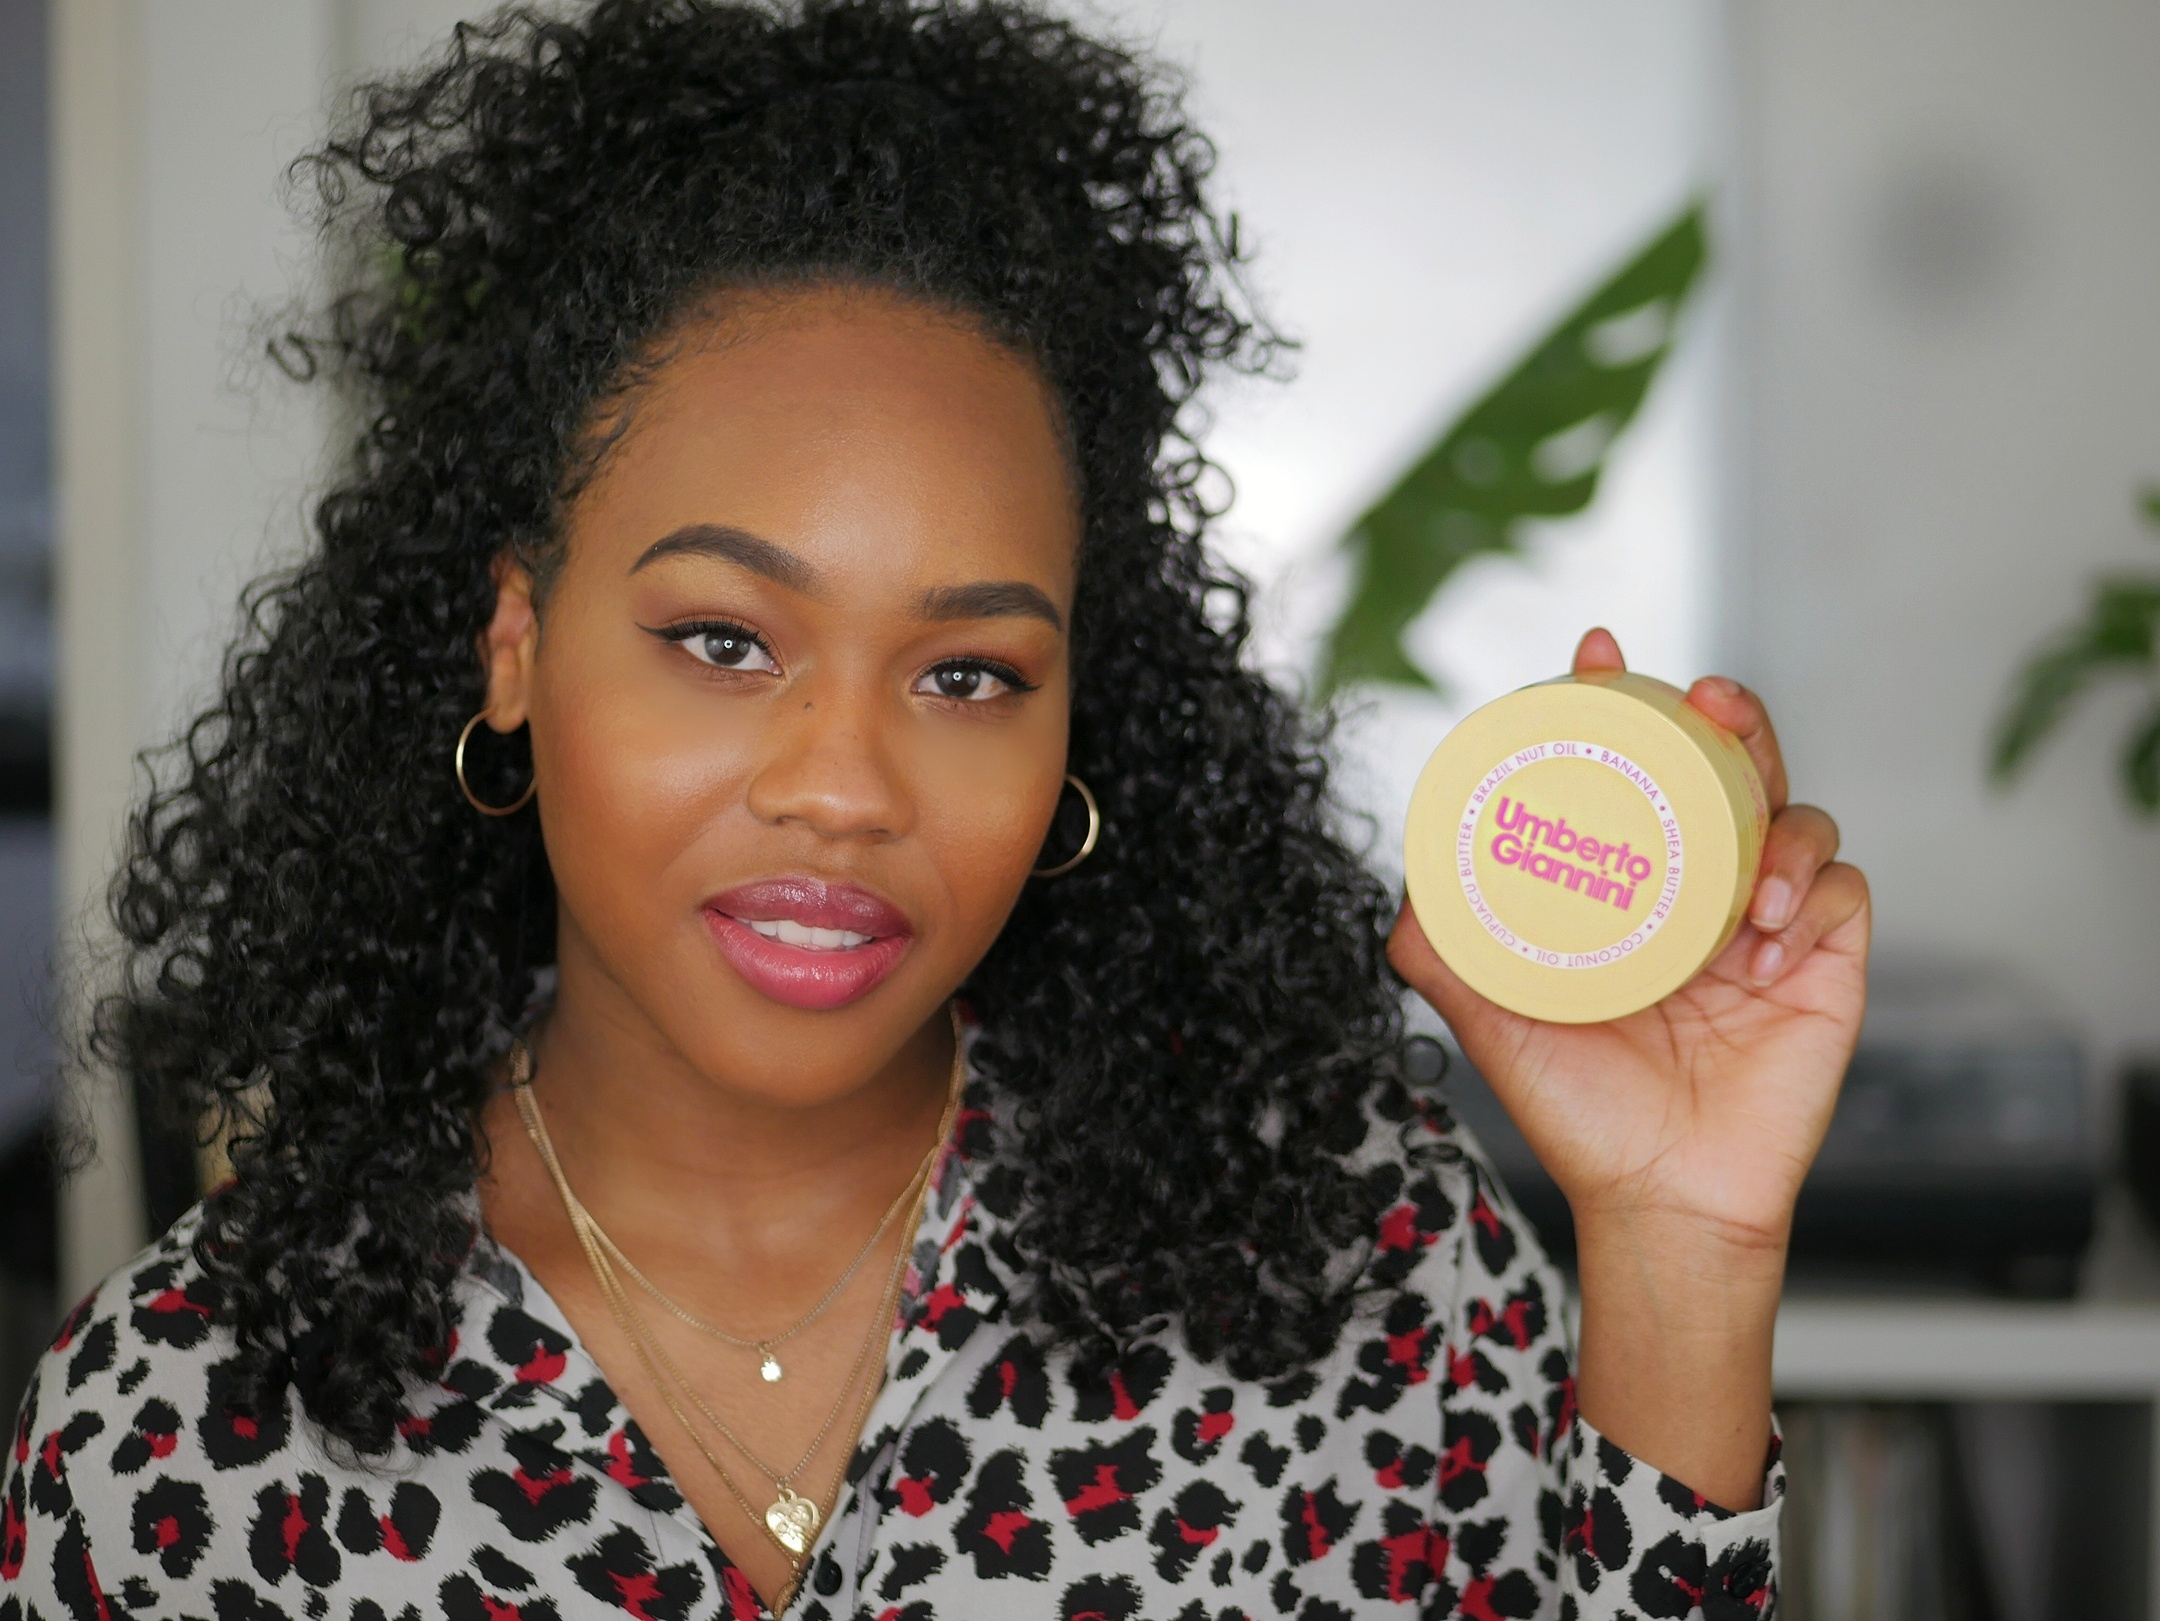 Umberto Giannini Banana Butter Leave-in Conditioner Honest Review